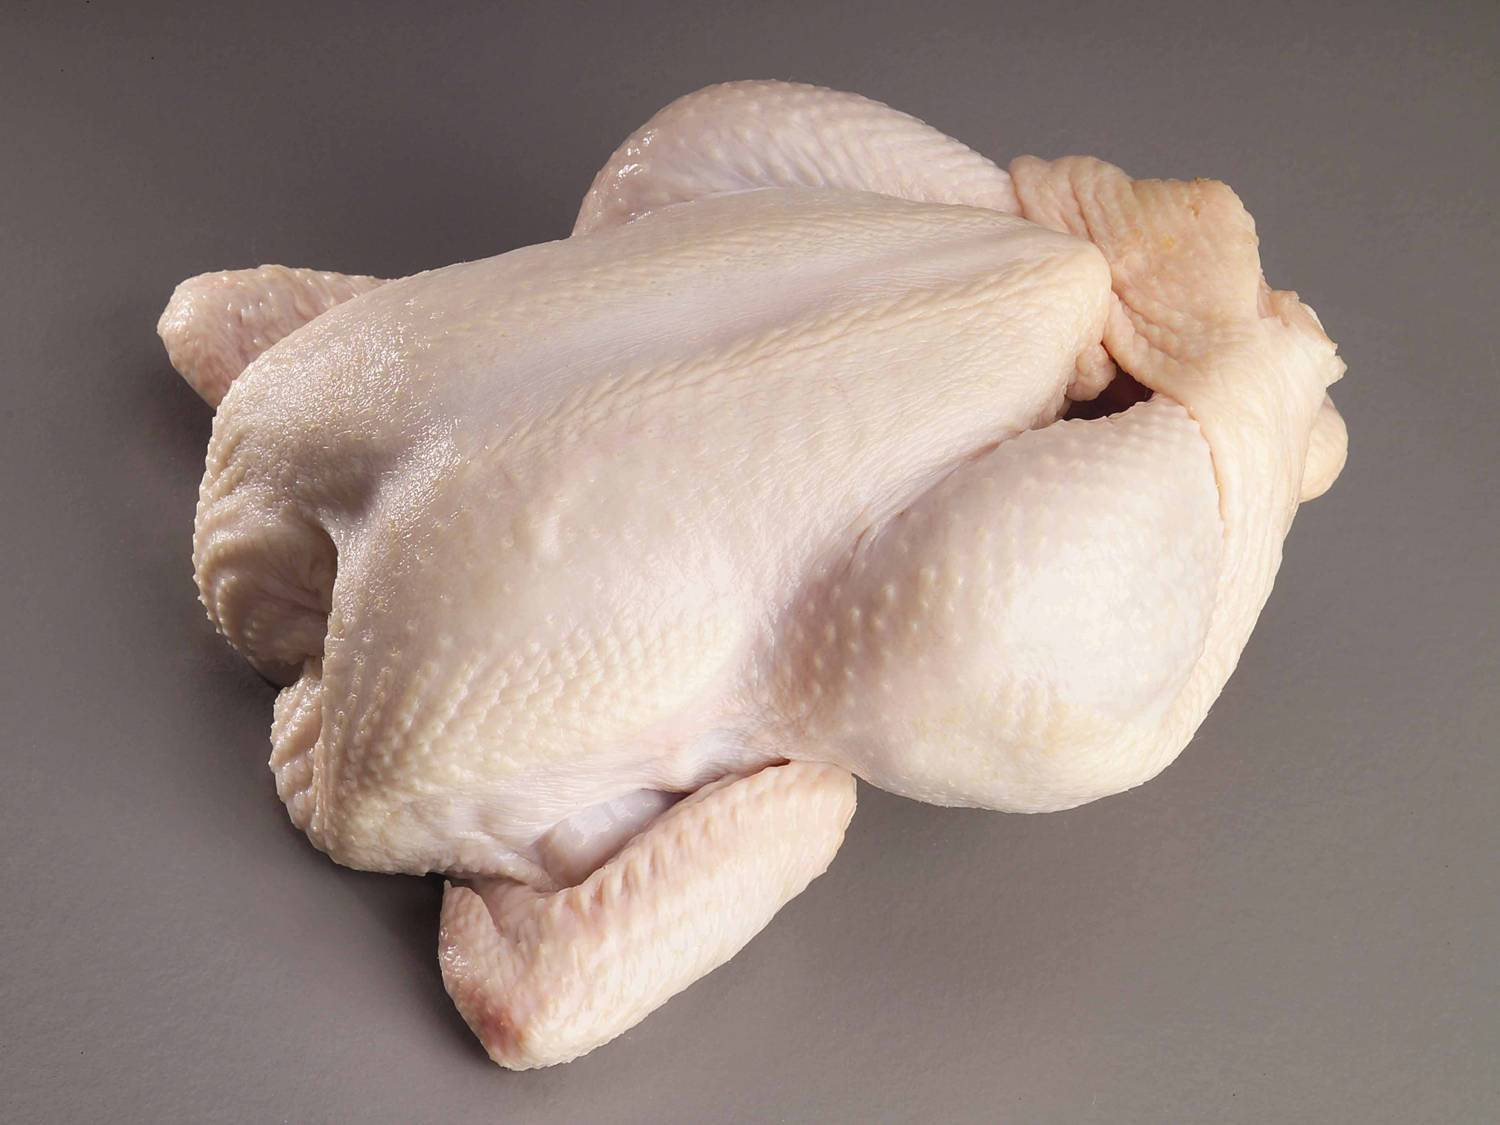 Halal Frozen Whole Chicken